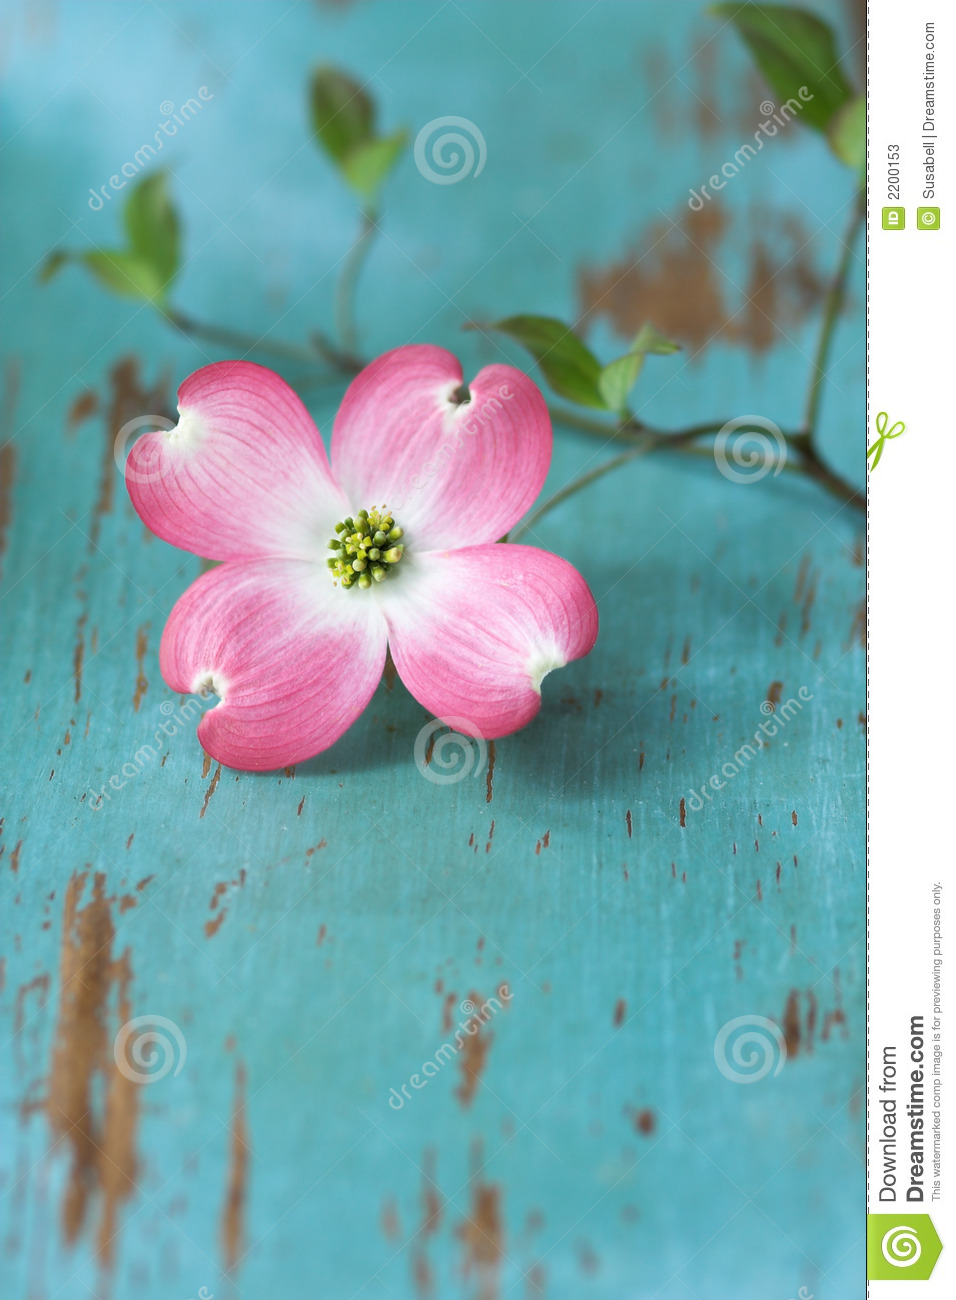 Dogwood Flower On Table Stock Image Image Of Leaves Table 2200153